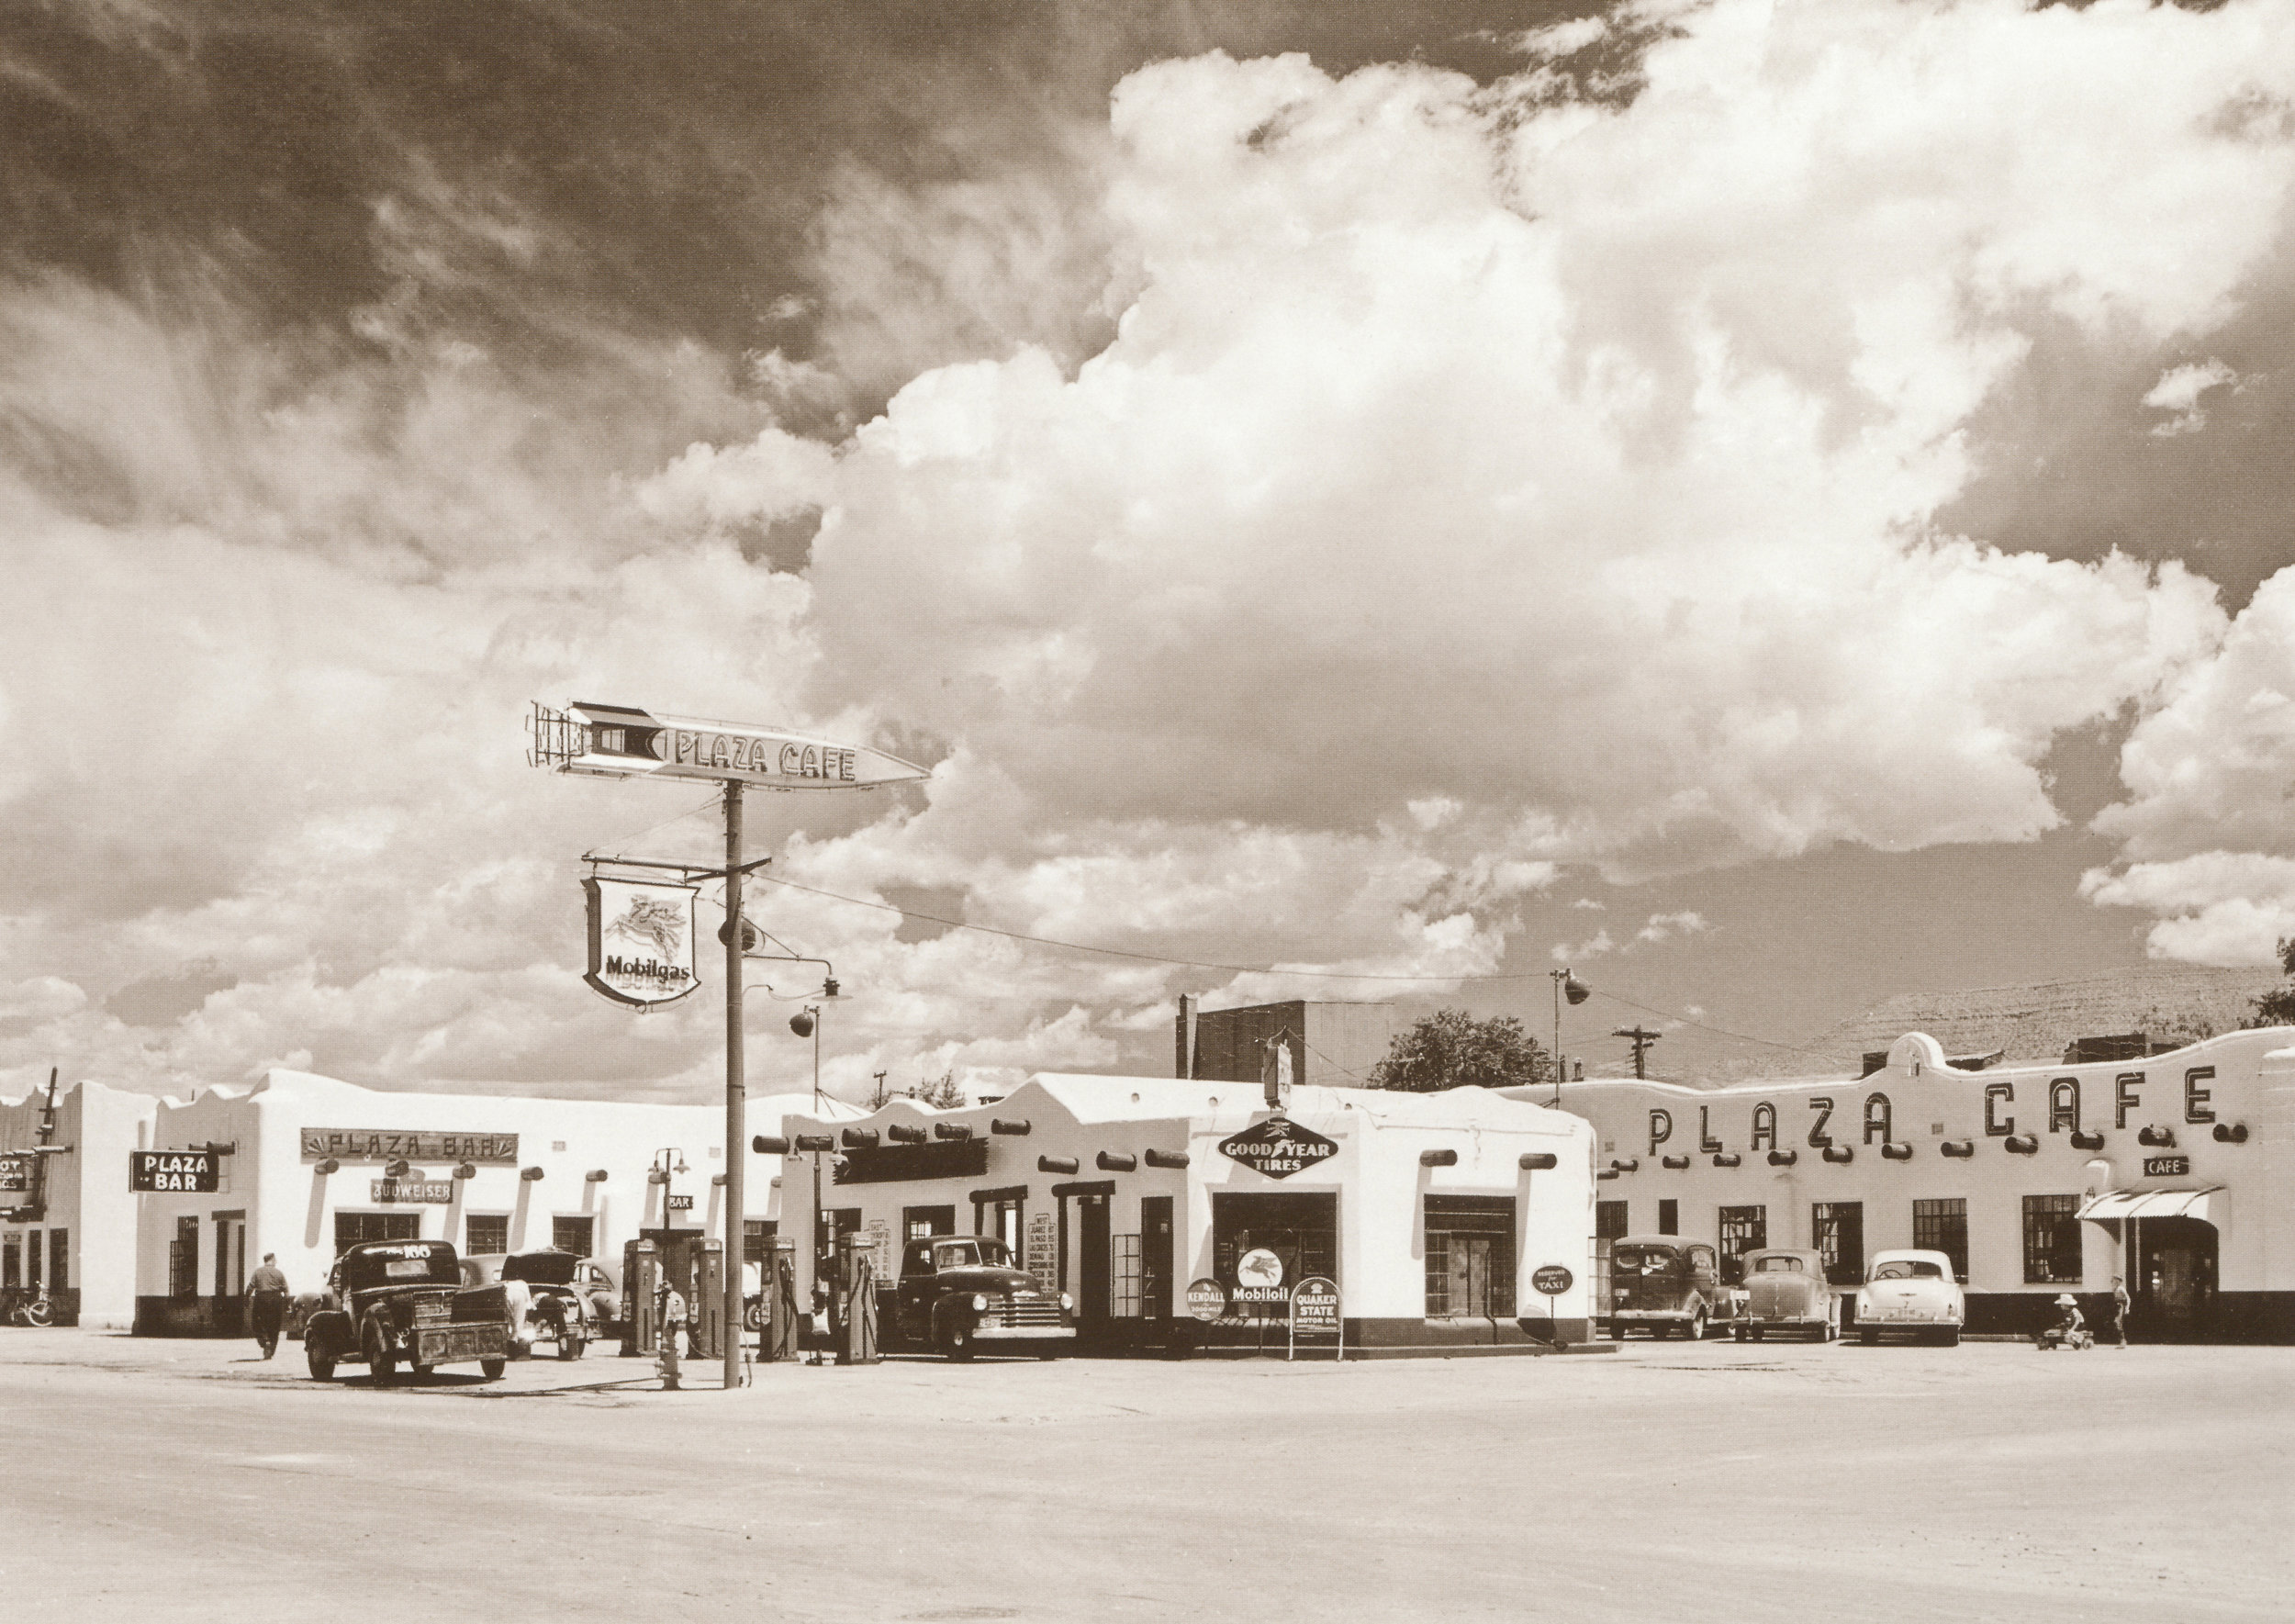 Alamogordo, New Mexico, along U.S. 54